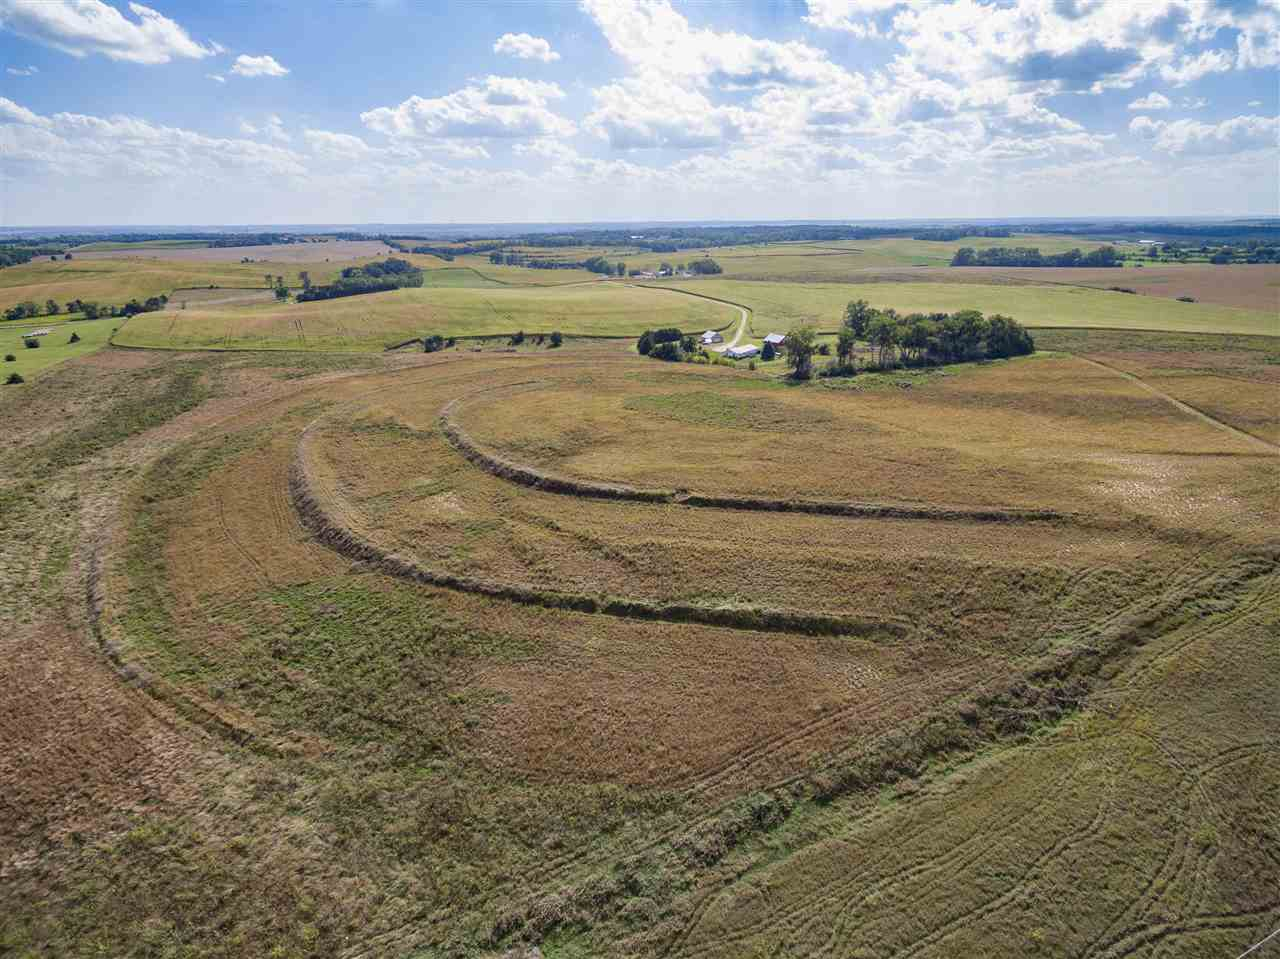 Attention: Investors, Hunters, Developers. 153 +- acres of Row Crop and Conservation Reserve Program mix located a mile from the city limits of Norfolk Ne. The property consists of 147+- tillable acres of with 70+- row crop and 77+- acres of CRP under contract until 2025 and 2028. The CRP contracts generate $198 and $202 per acre. The dryland crop ground lease runs year to year and has been generating $240 per acre. The CRP is abundant and is home to upland game and deer. The rolling hills create a perfect opportunity for tower blinds. A dry pond could be reinvigorated for fishing or waterfowl habitat. With its close location to Norfolk and its rolling topography the south end of this property would be perfect for residential acreage development. Own your dream acreage or hunting paradise while letting the lease and CRP income pay for it. Call today for additional information or to tour the property.